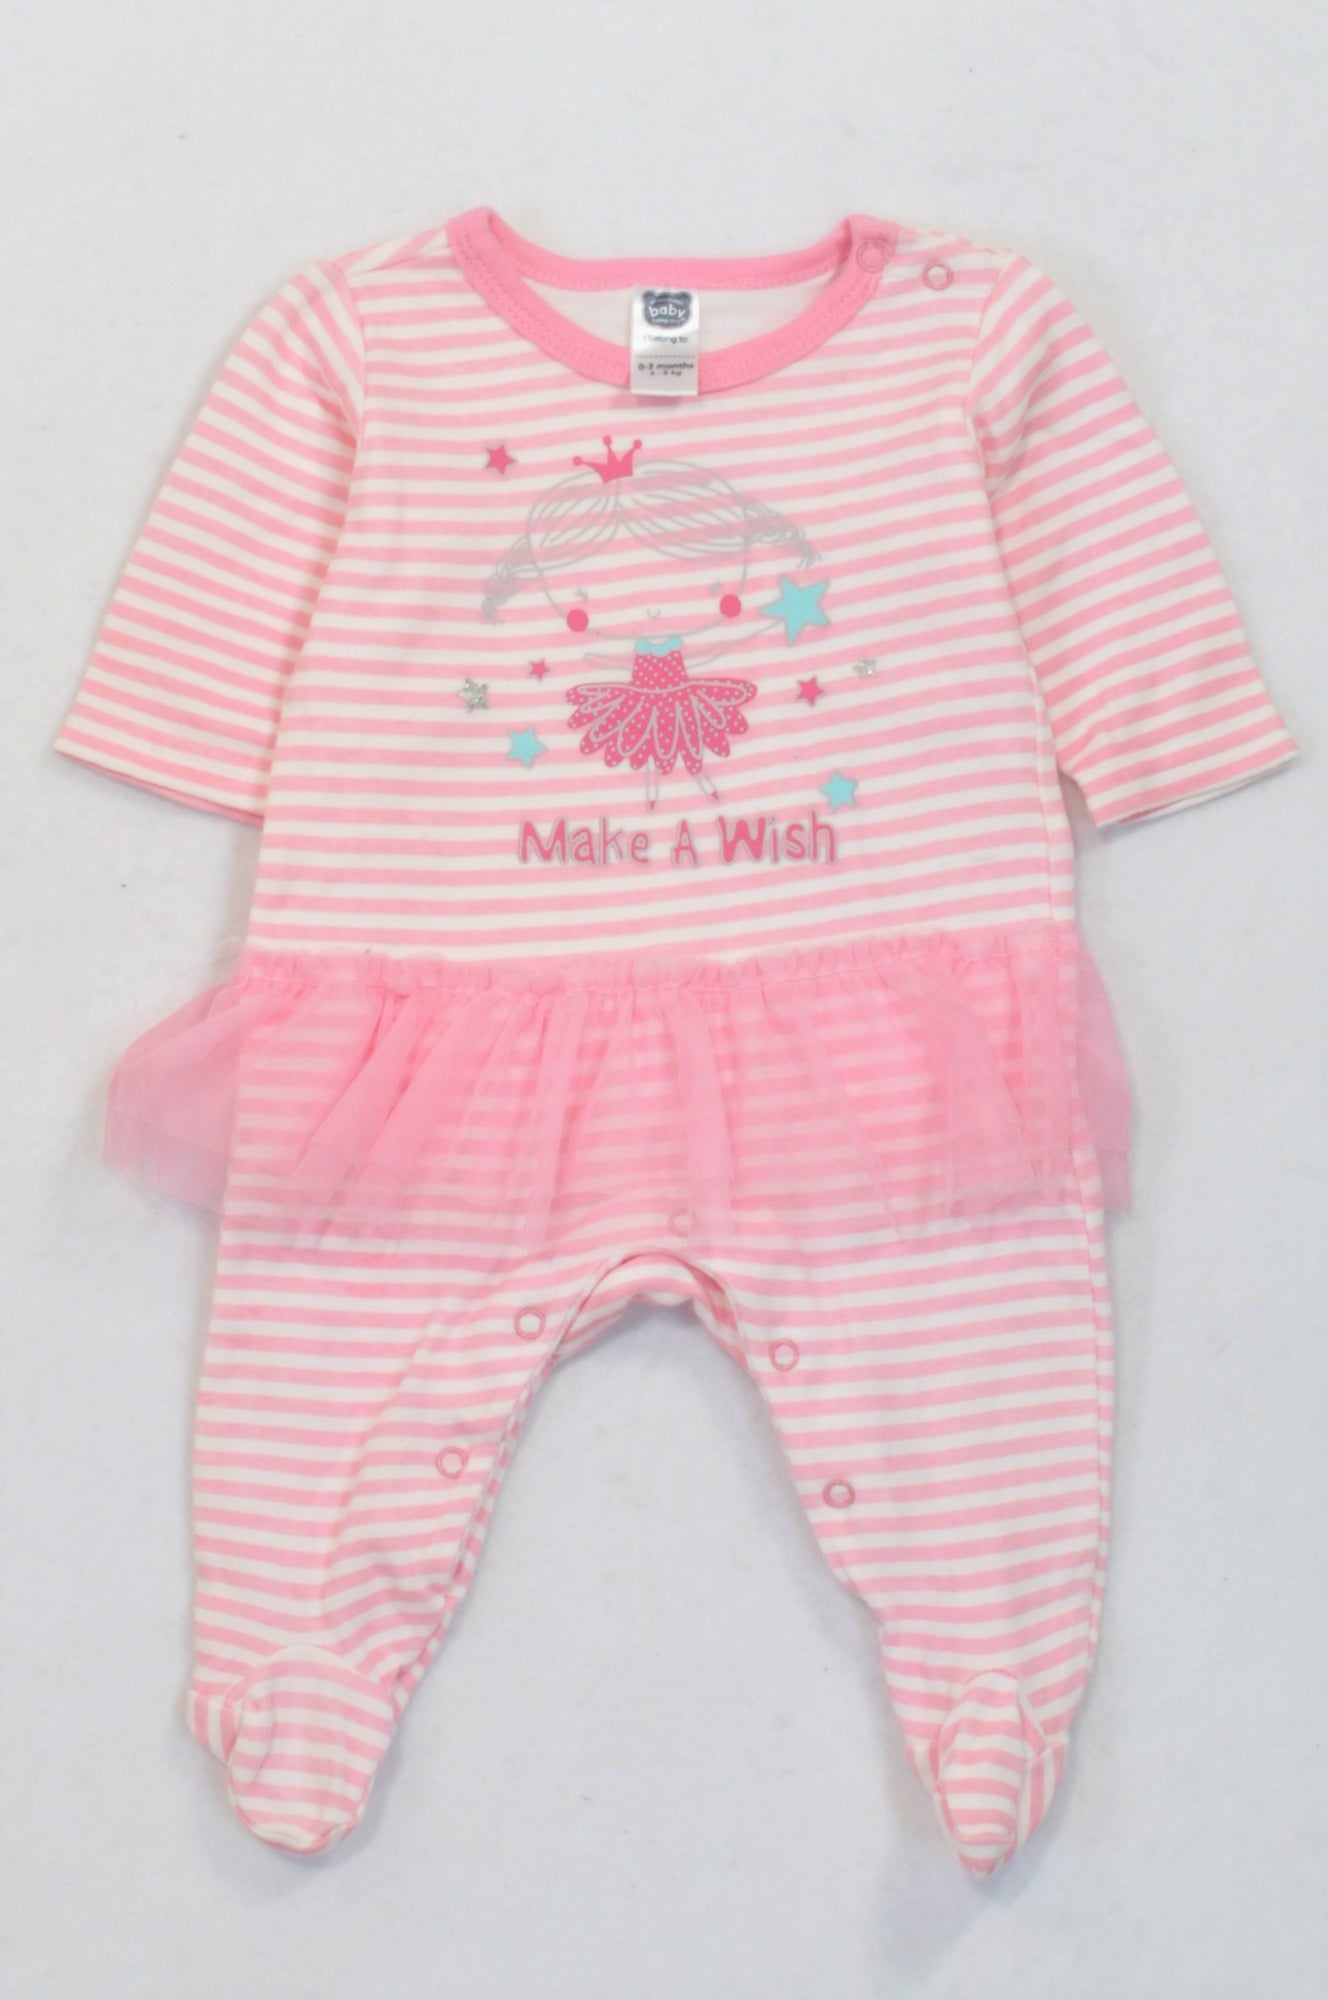 Ackermans Pink Stripe Make A Wish Tulle Onesie Girls 0-3 months